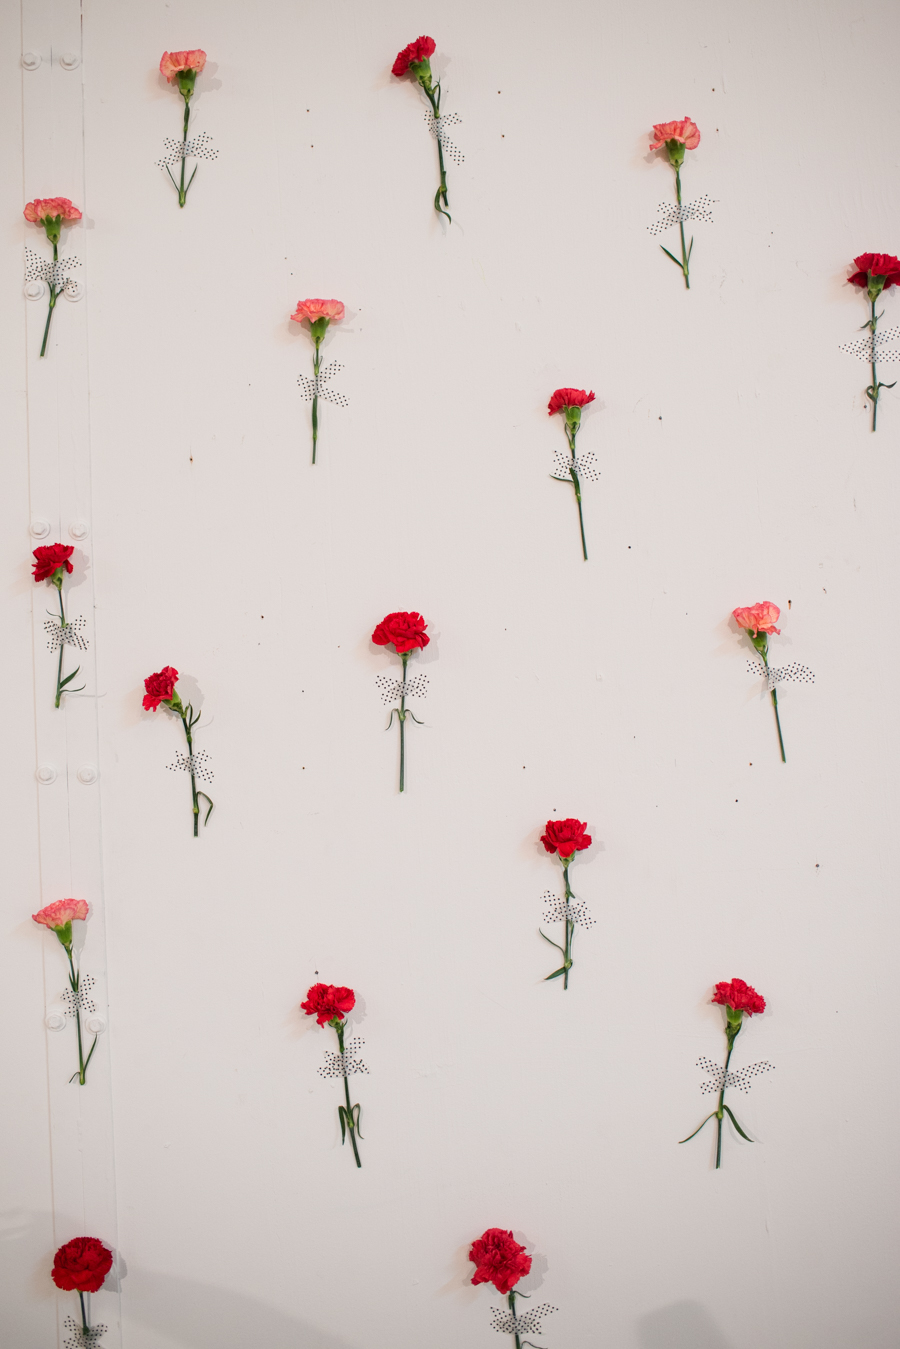 Use washi tape to adhere fresh flower stems to create a beautiful backdrop that's perfect for photo booths, dessert tables or even a wedding ceremony.